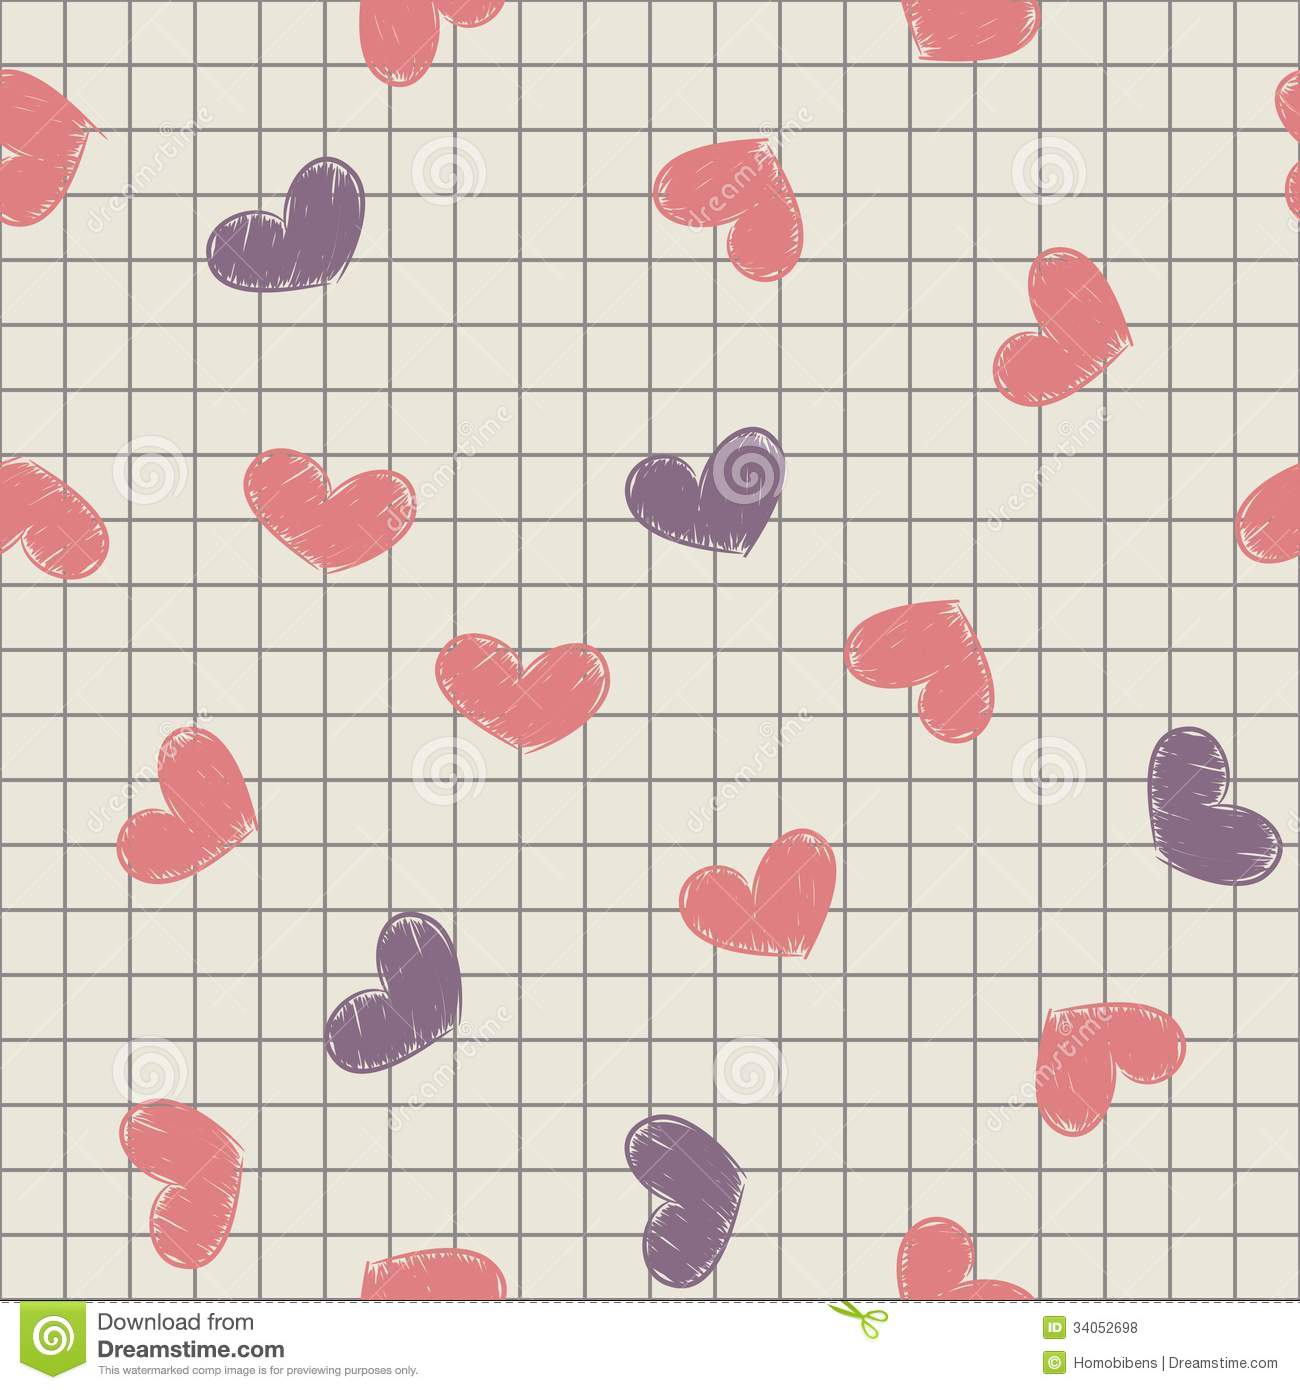 Seamless with ink painted hearts on a sheet of not